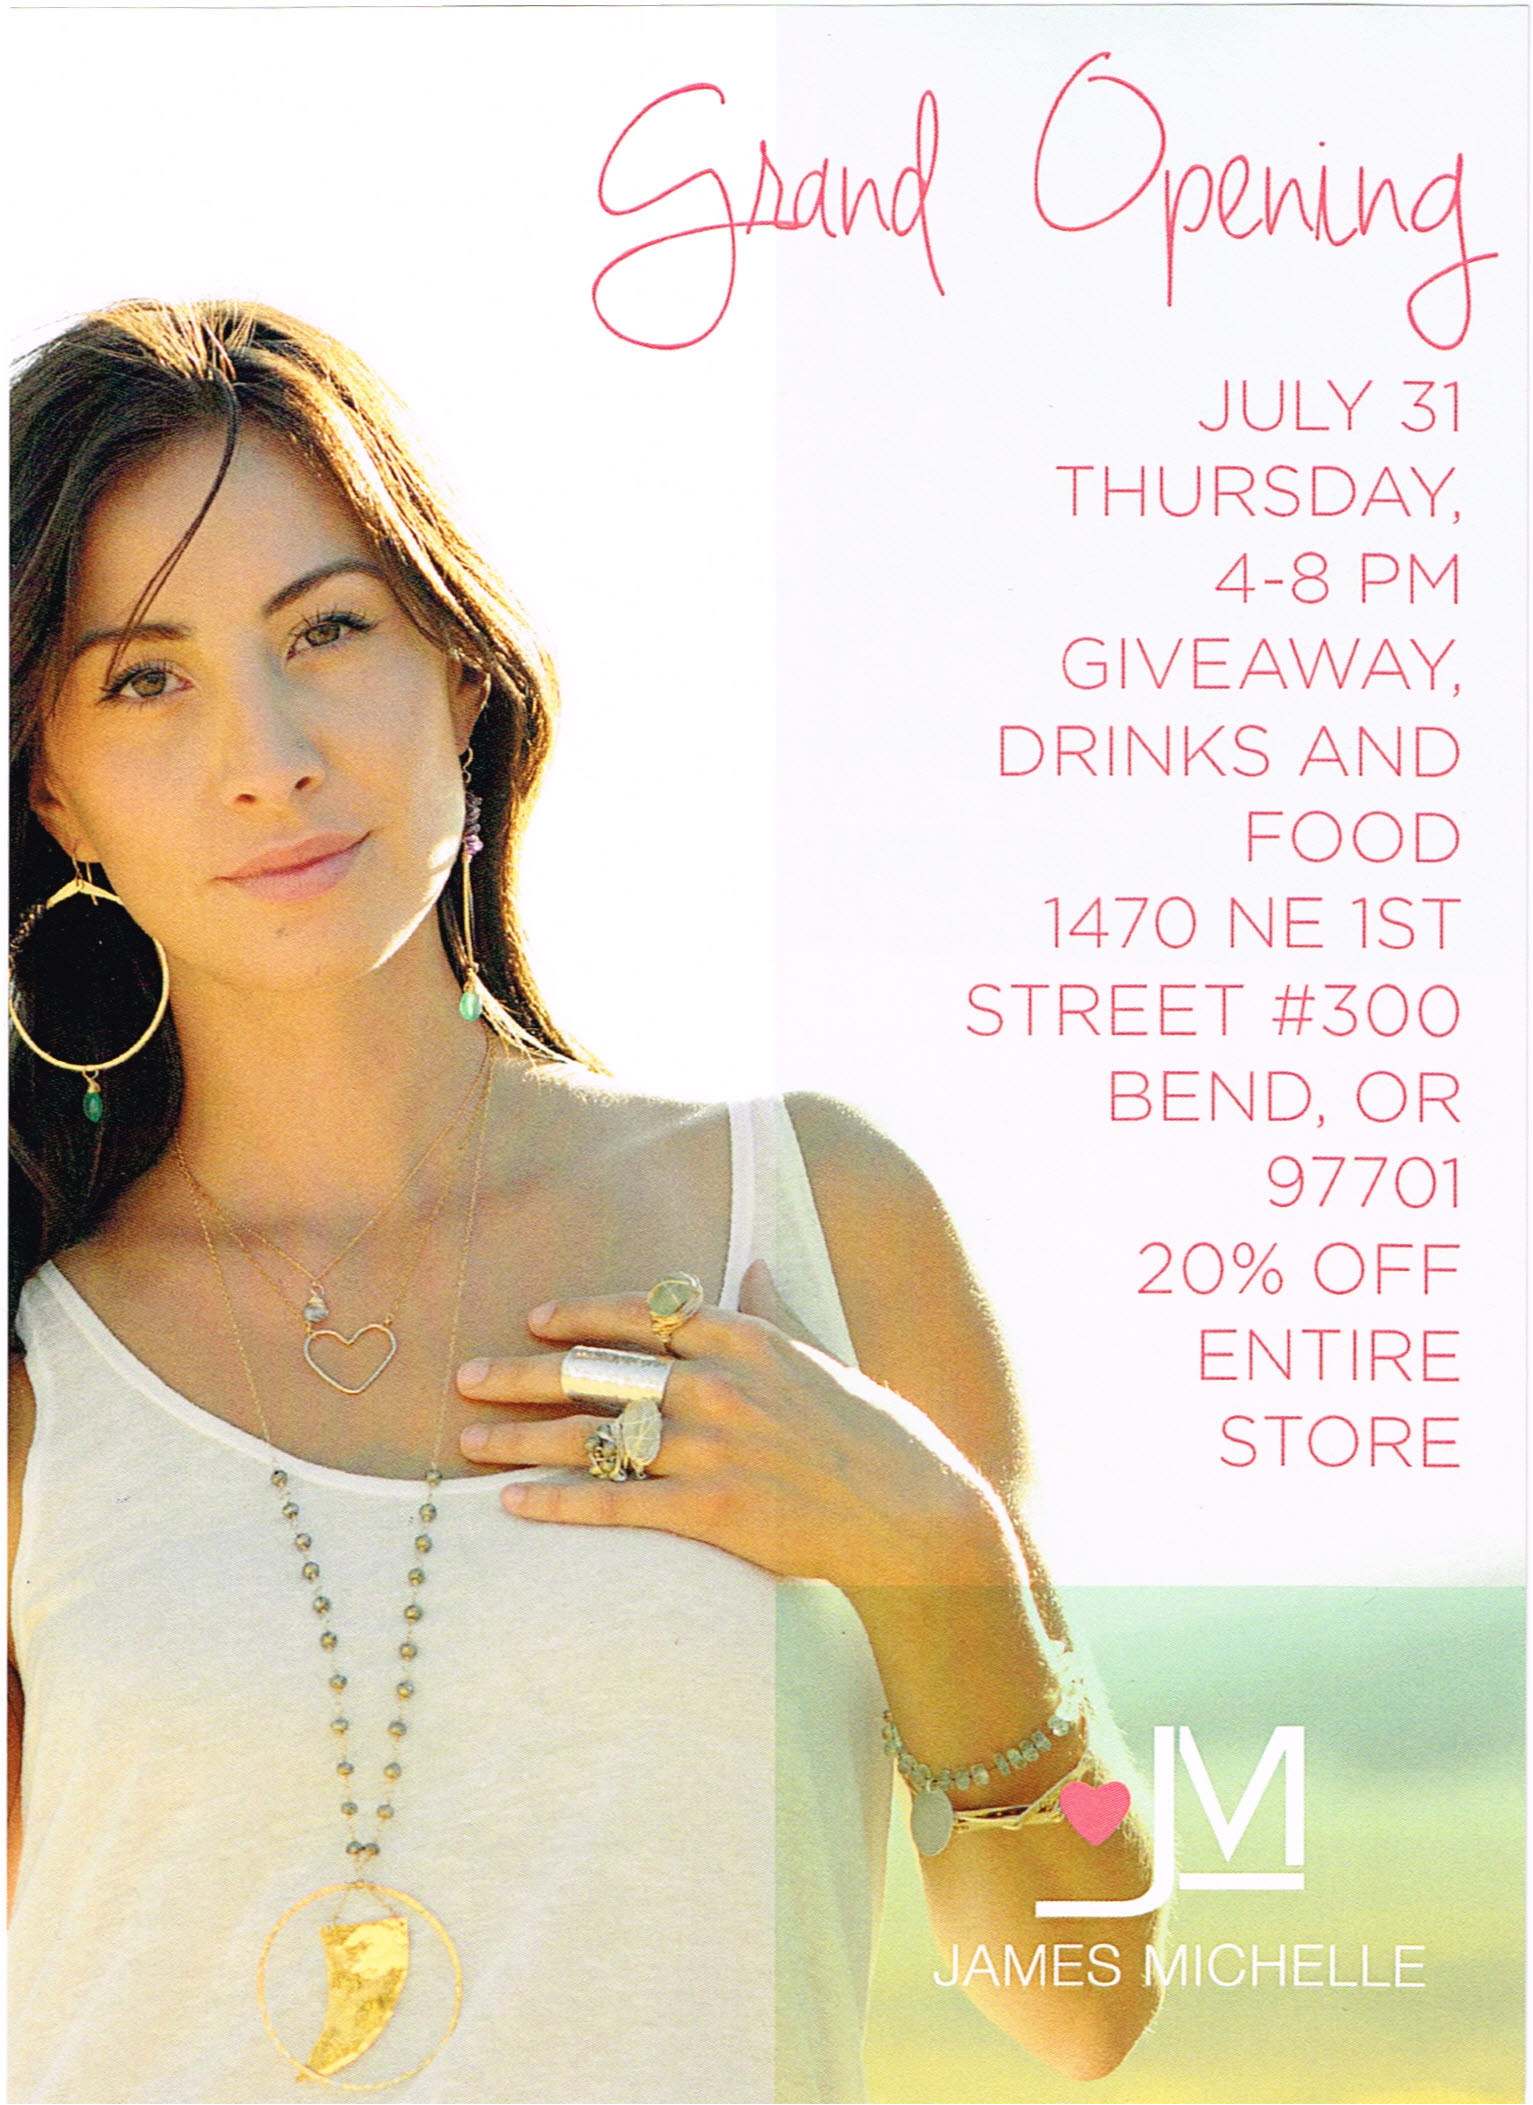 Don't miss the Grand Opening for James Michelle Jewelry.  Mike and I have personally had JM make us Jewelry for our Wives with custom personal touch's. Our wives love the Jewelry and the Ladies at JM were fabulous to work with.  Brian Nordlund